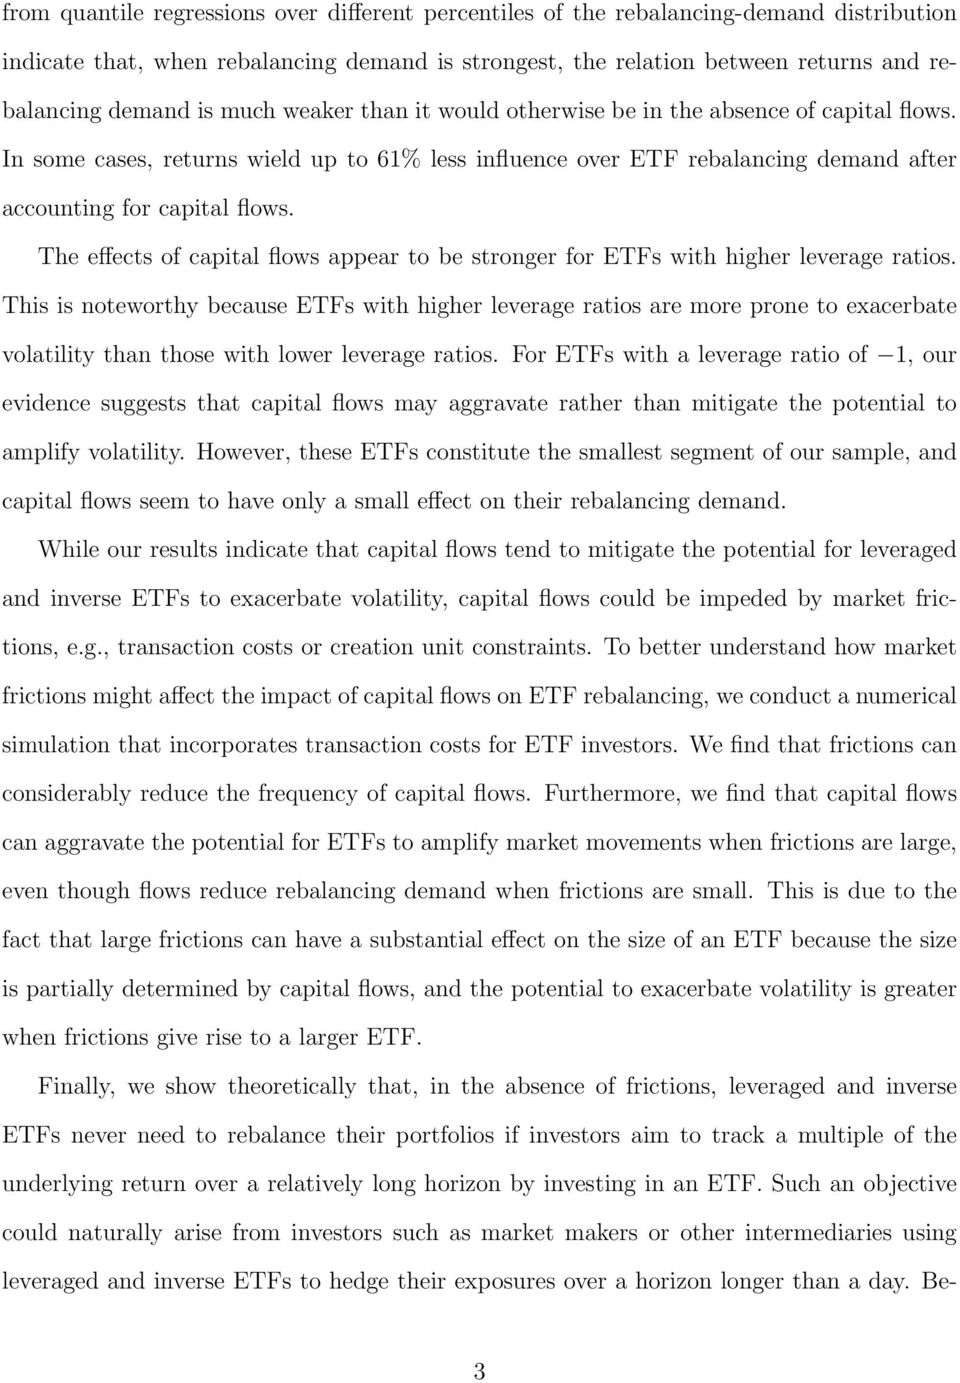 The effects of capital flows appear to be stronger for ETFs with higher leverage ratios.